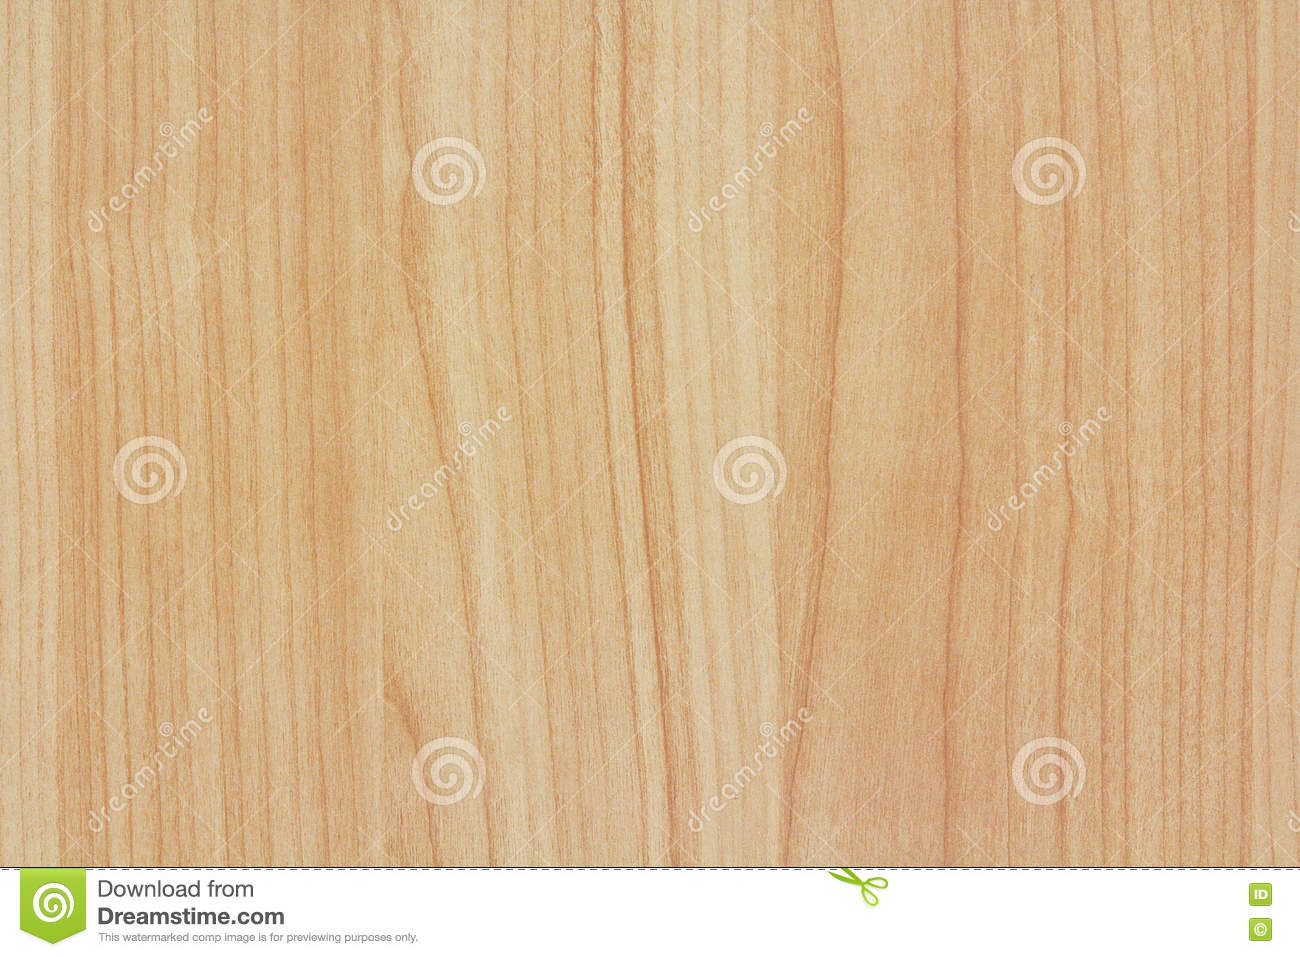 Royalty Free Stock Photo Download White Plywood Plank Floor Painted Grey Top Table Old Wooden Texture